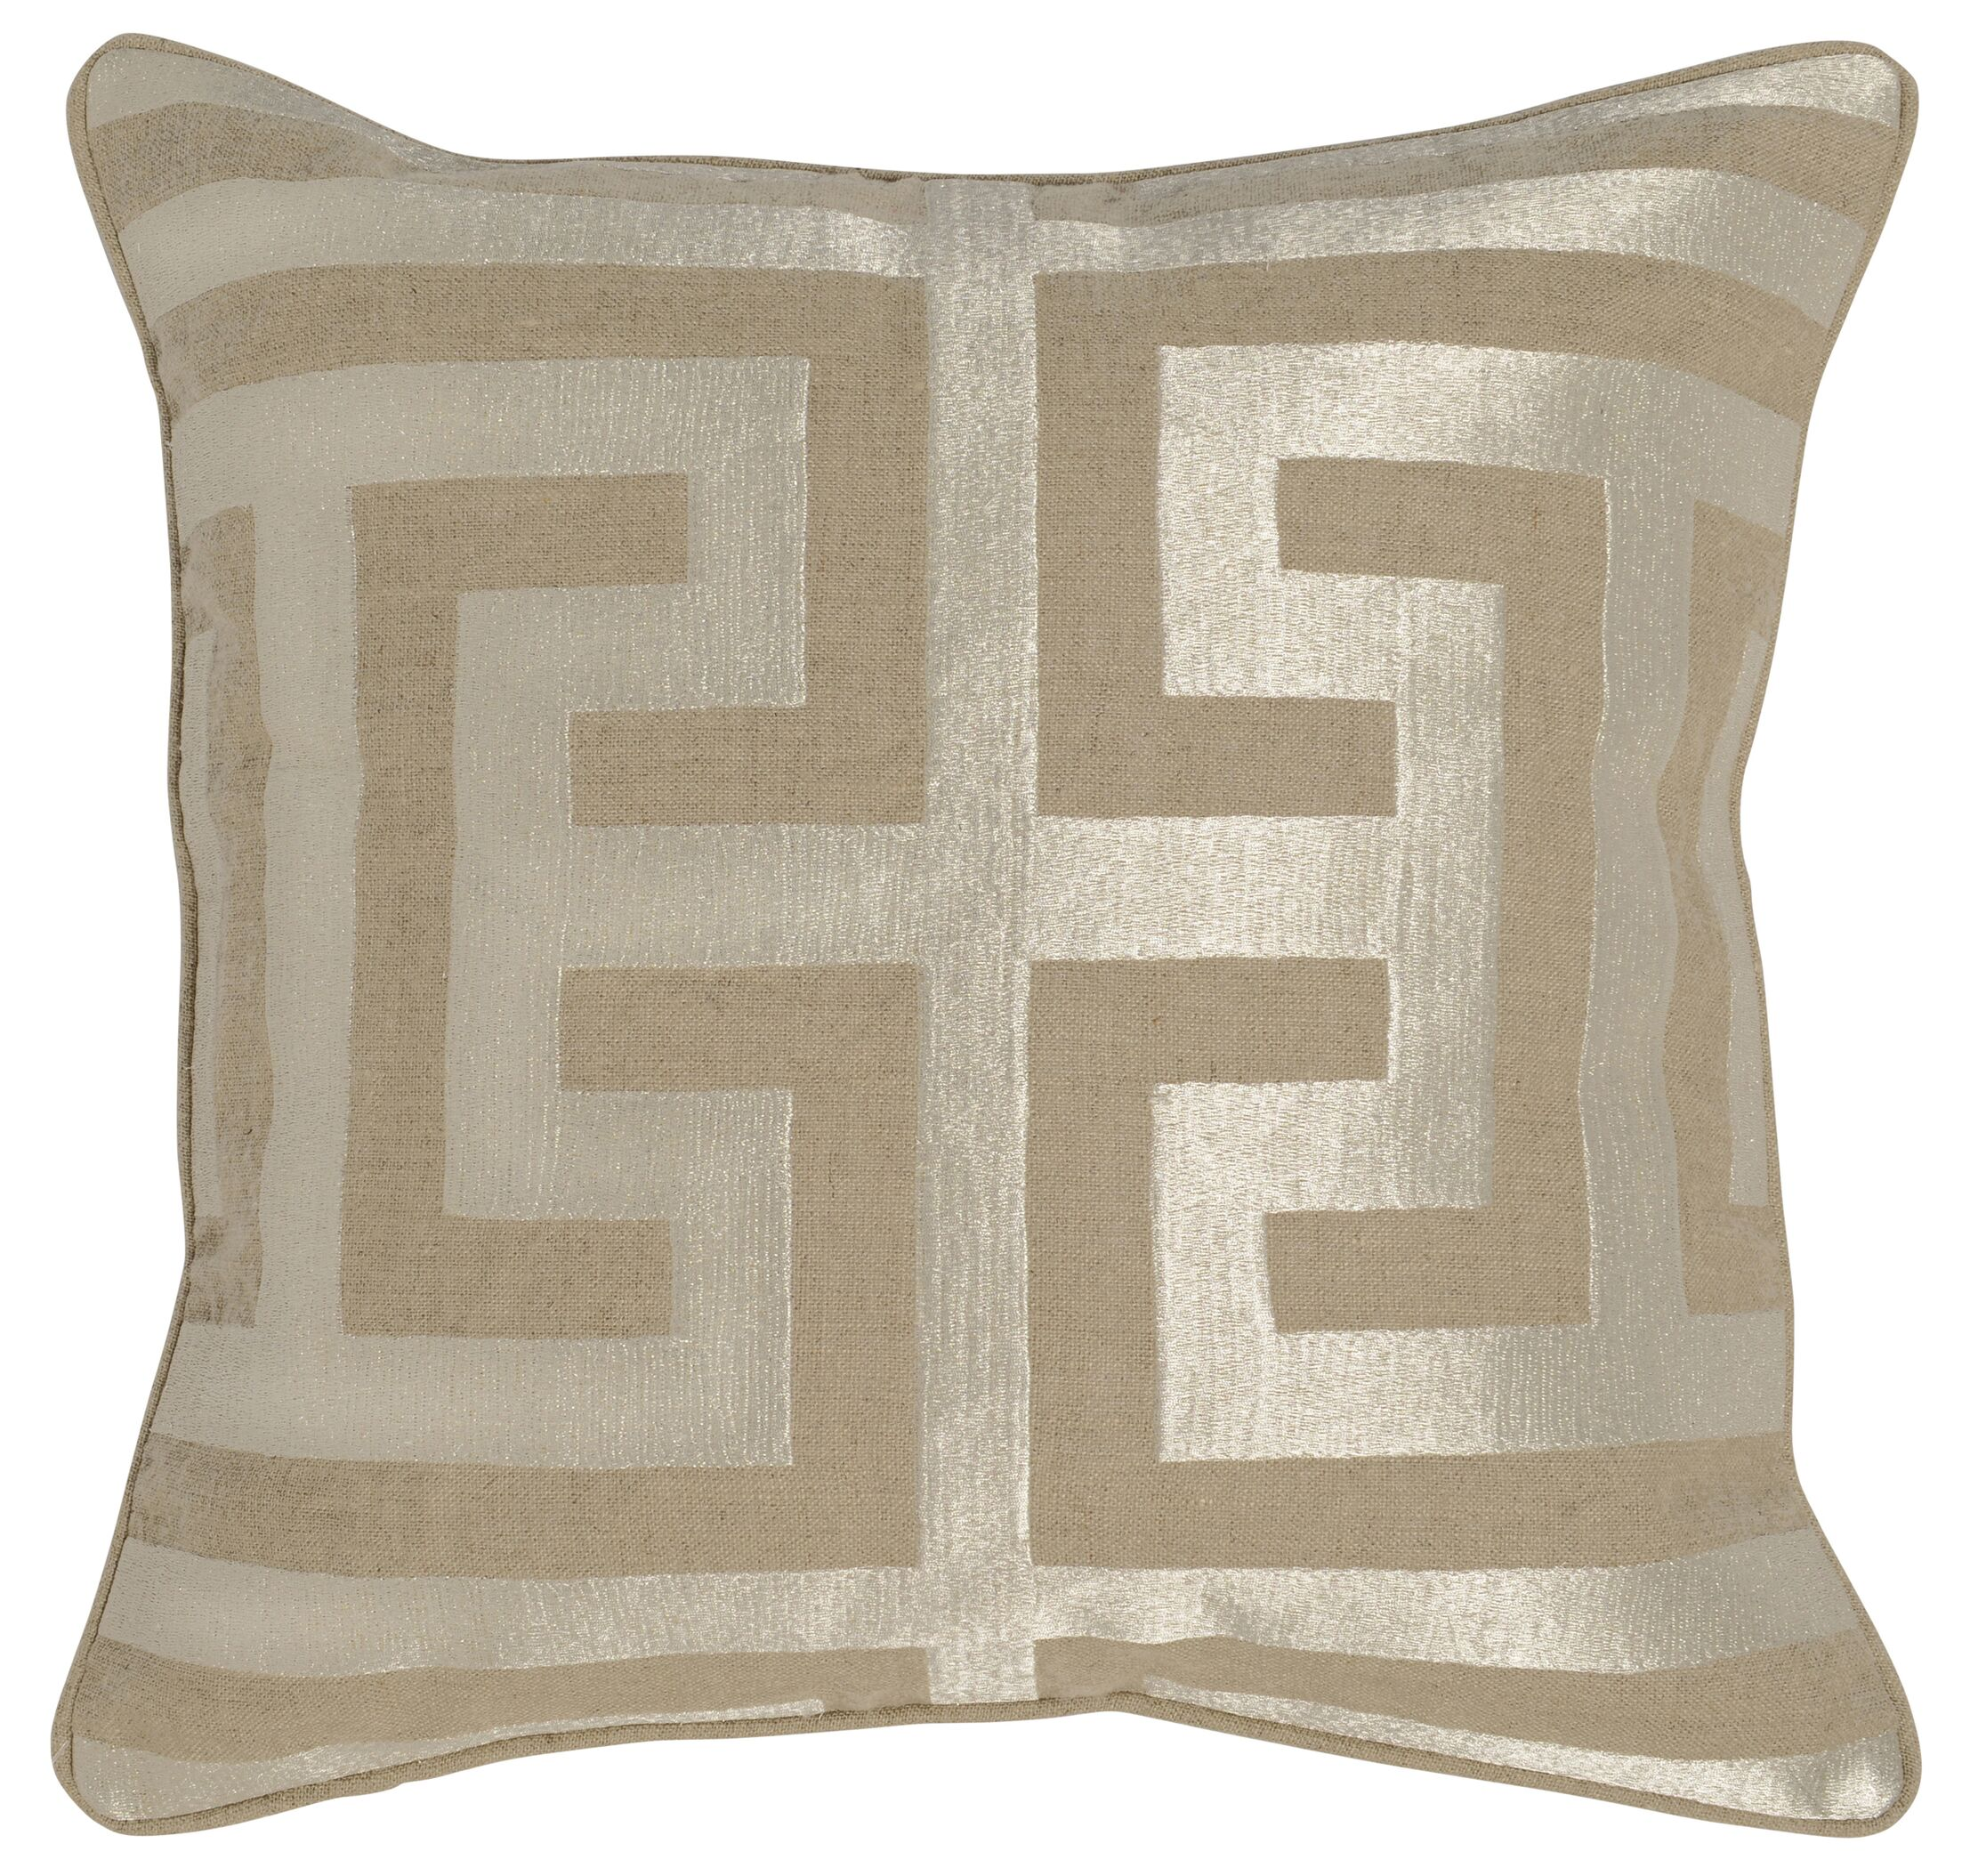 Kaila Linen Throw Pillow